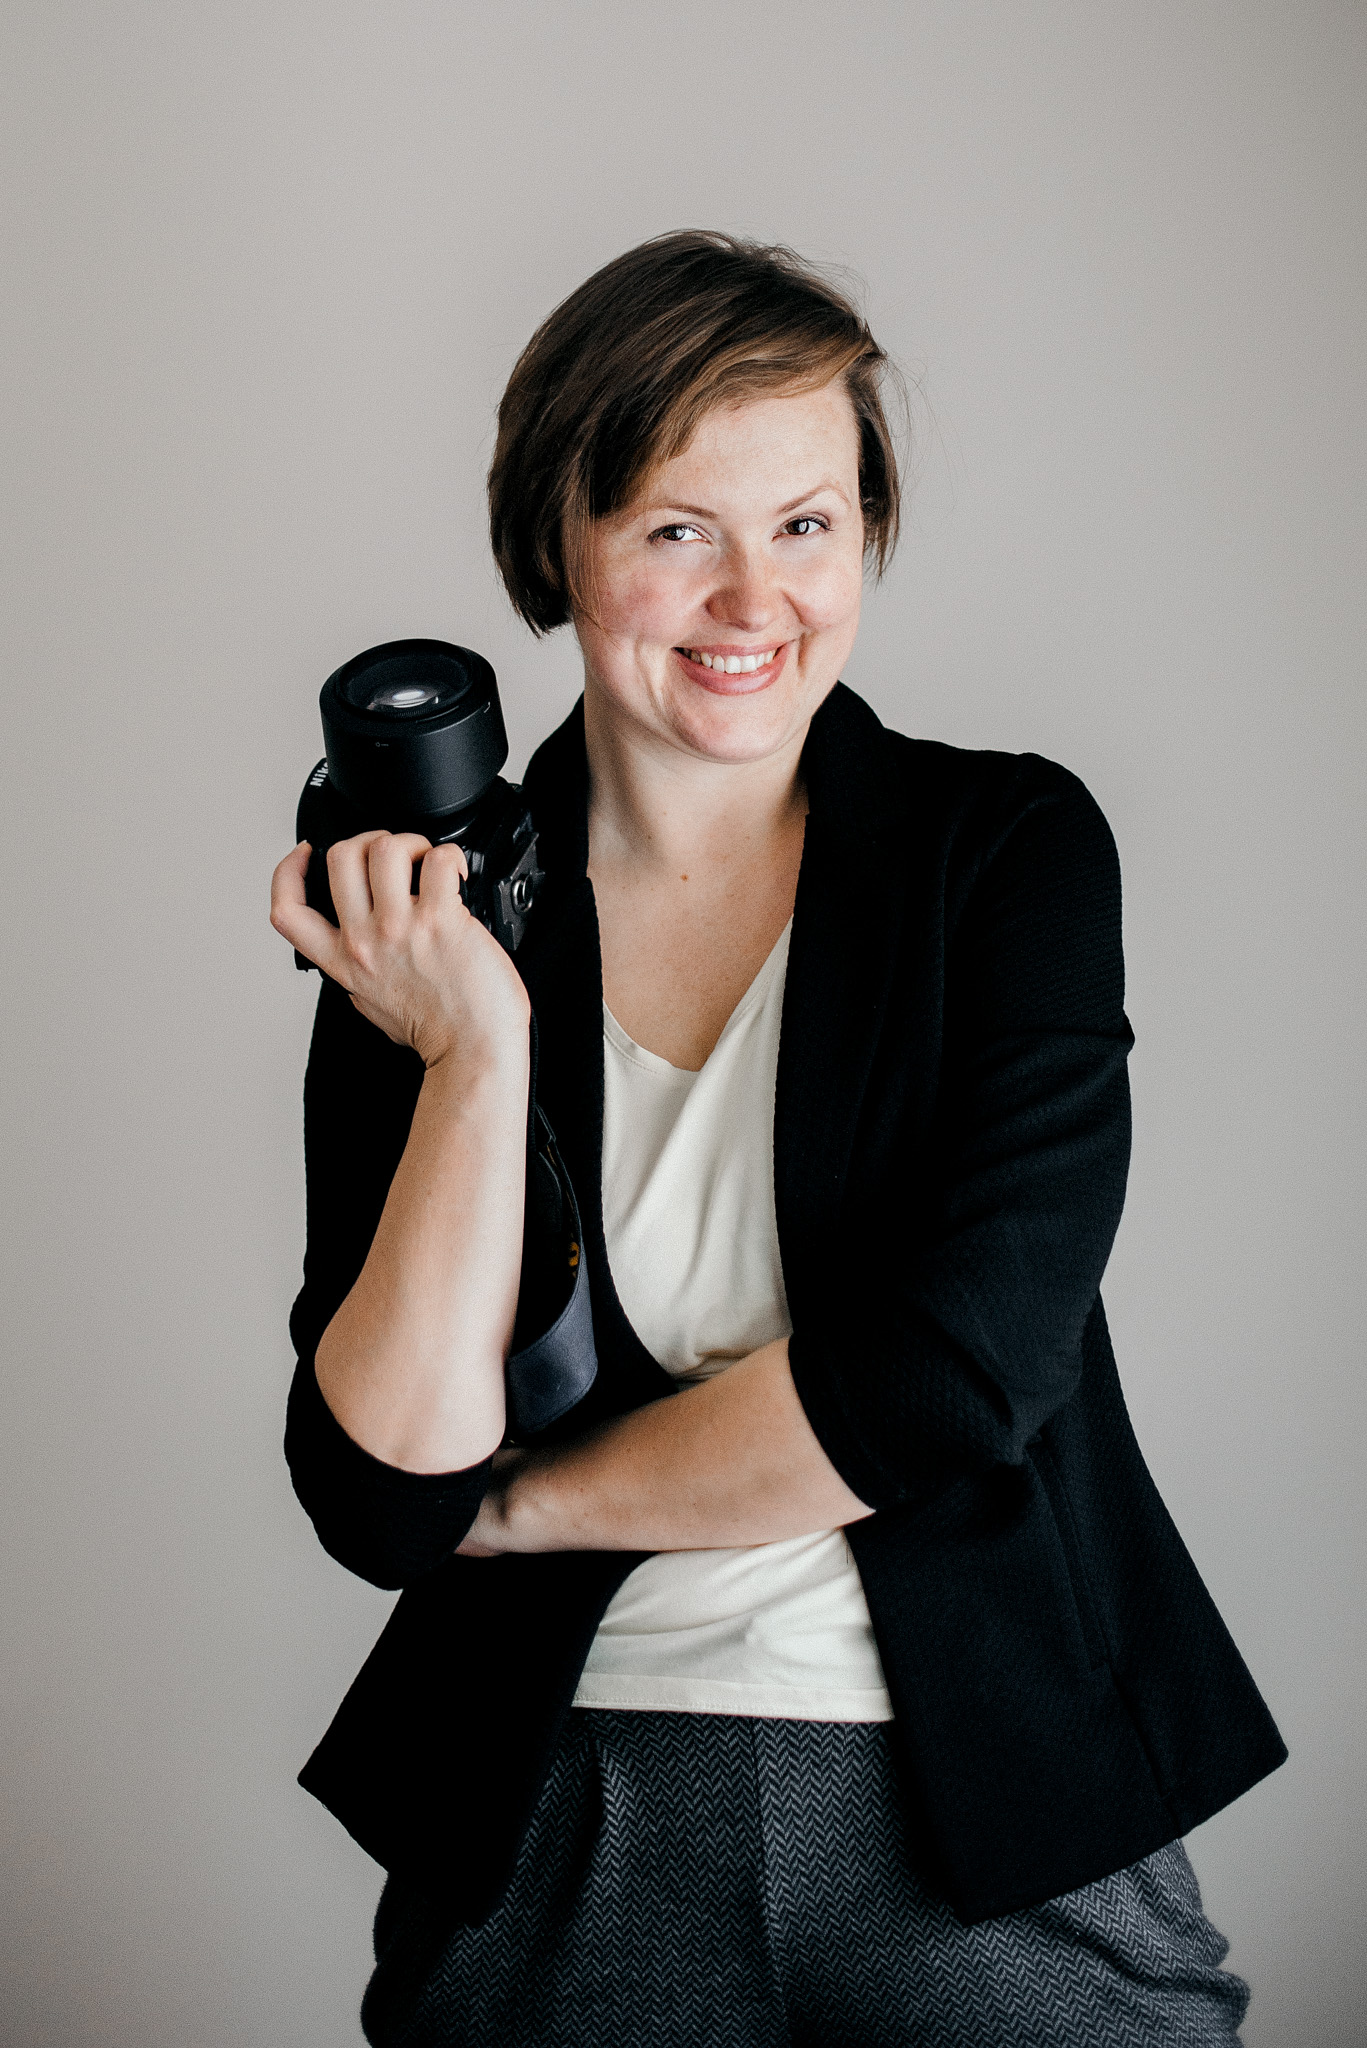 Portrait of Barbara the wedding photographer smiling and holding camera